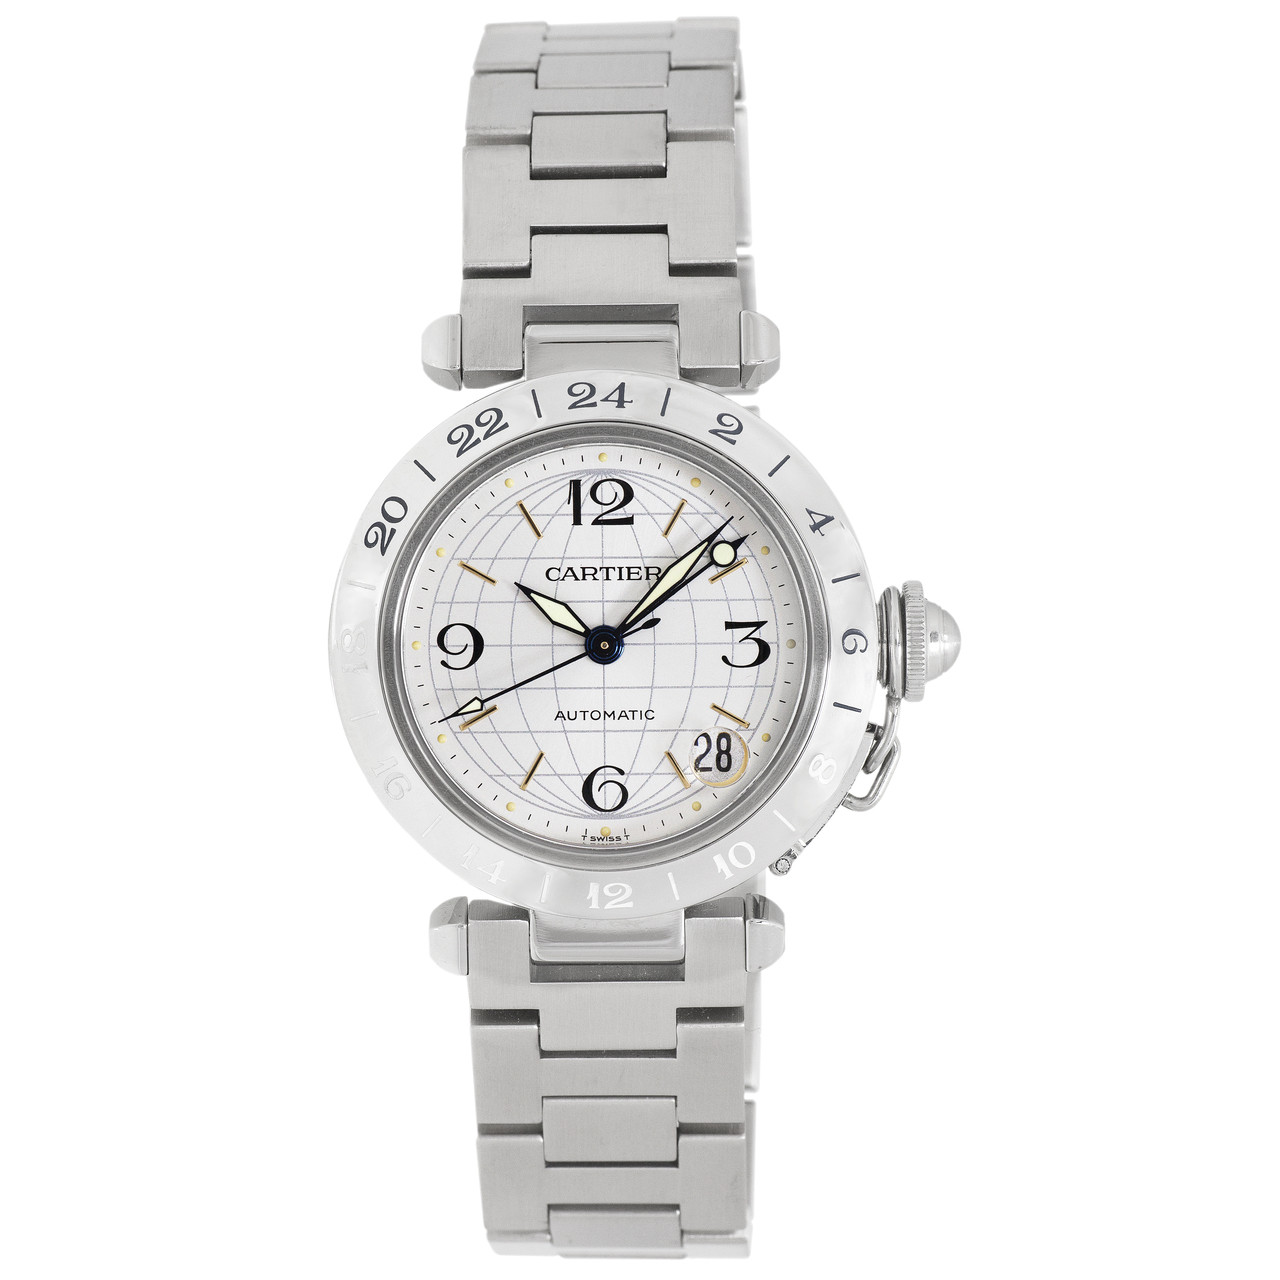 1bb533111b2e2 ... Cartier Pasha C GMT Meridian Automatic Watch W31078M7 to your wish  list. mgctlbxN$MZP mgctlbxV$5.1.11 mgctlbxL$C.